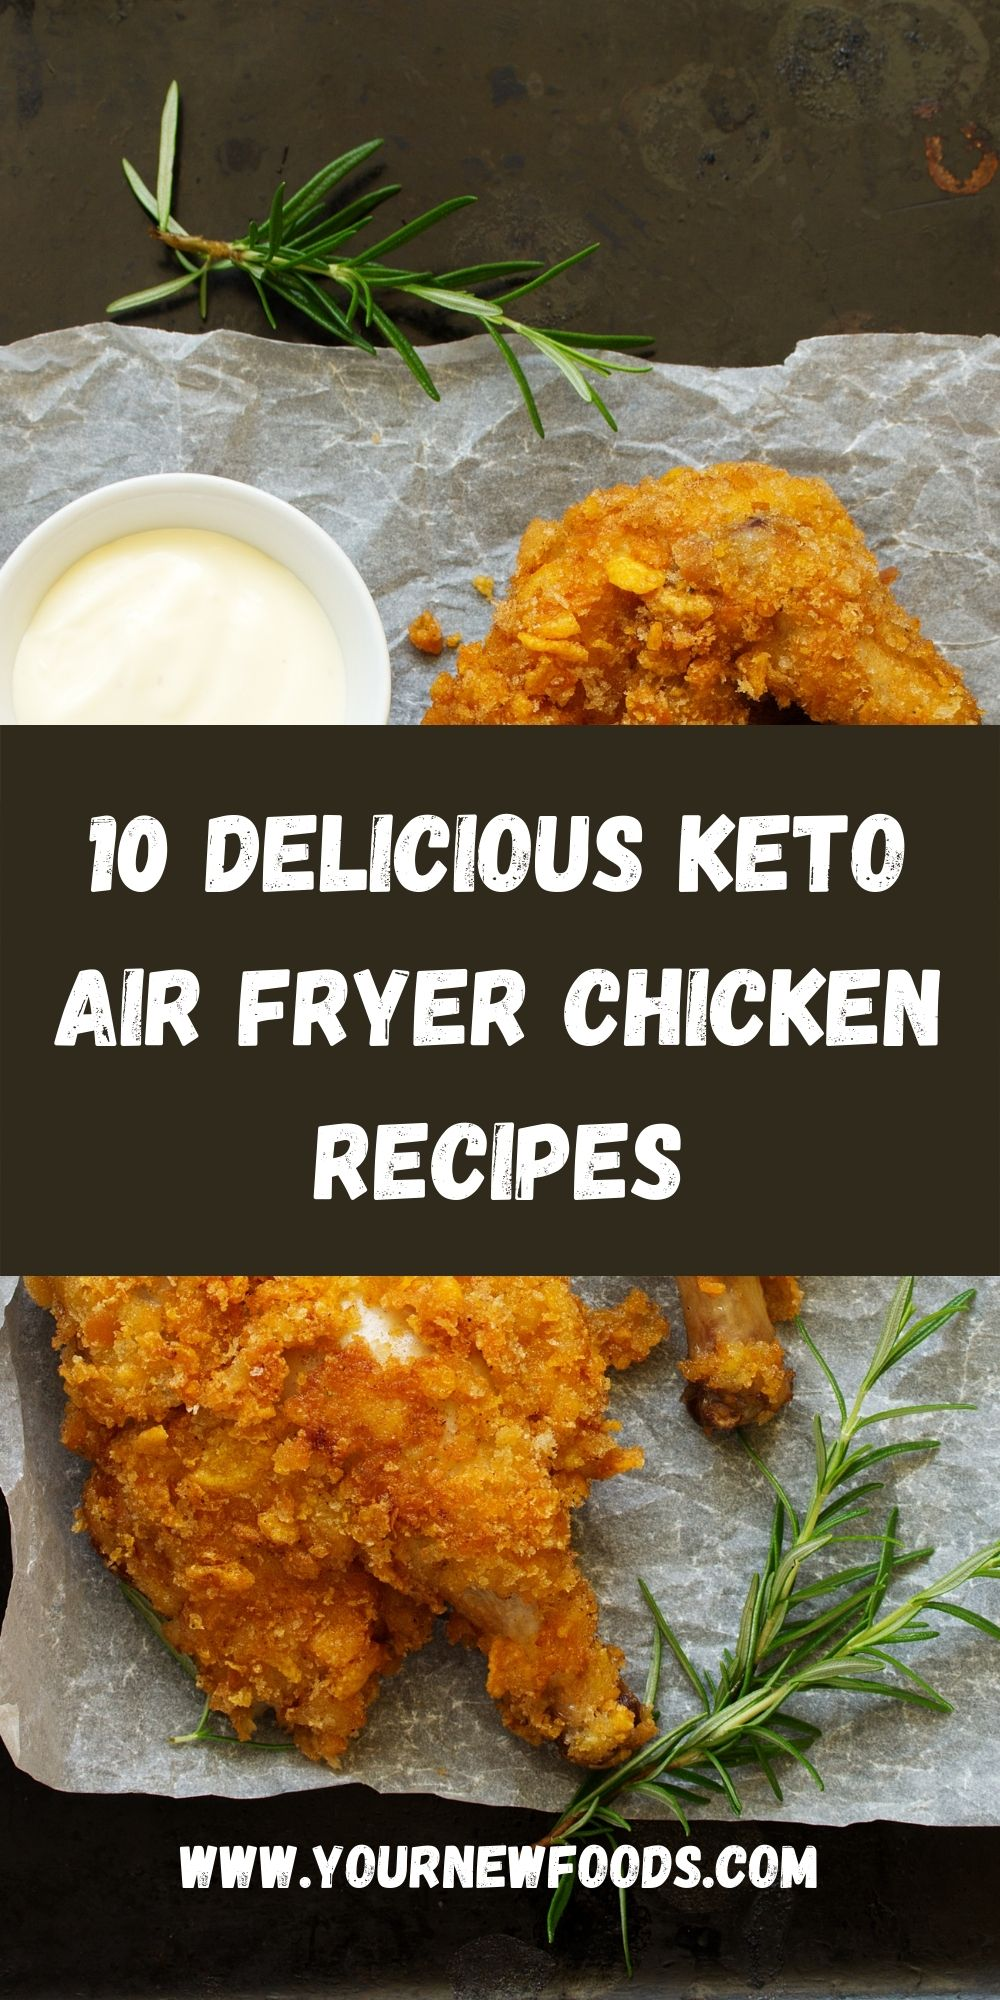 10 Delicious Keto Air Fryer Chicken Recipes with a picture of fried chicken on a black slate